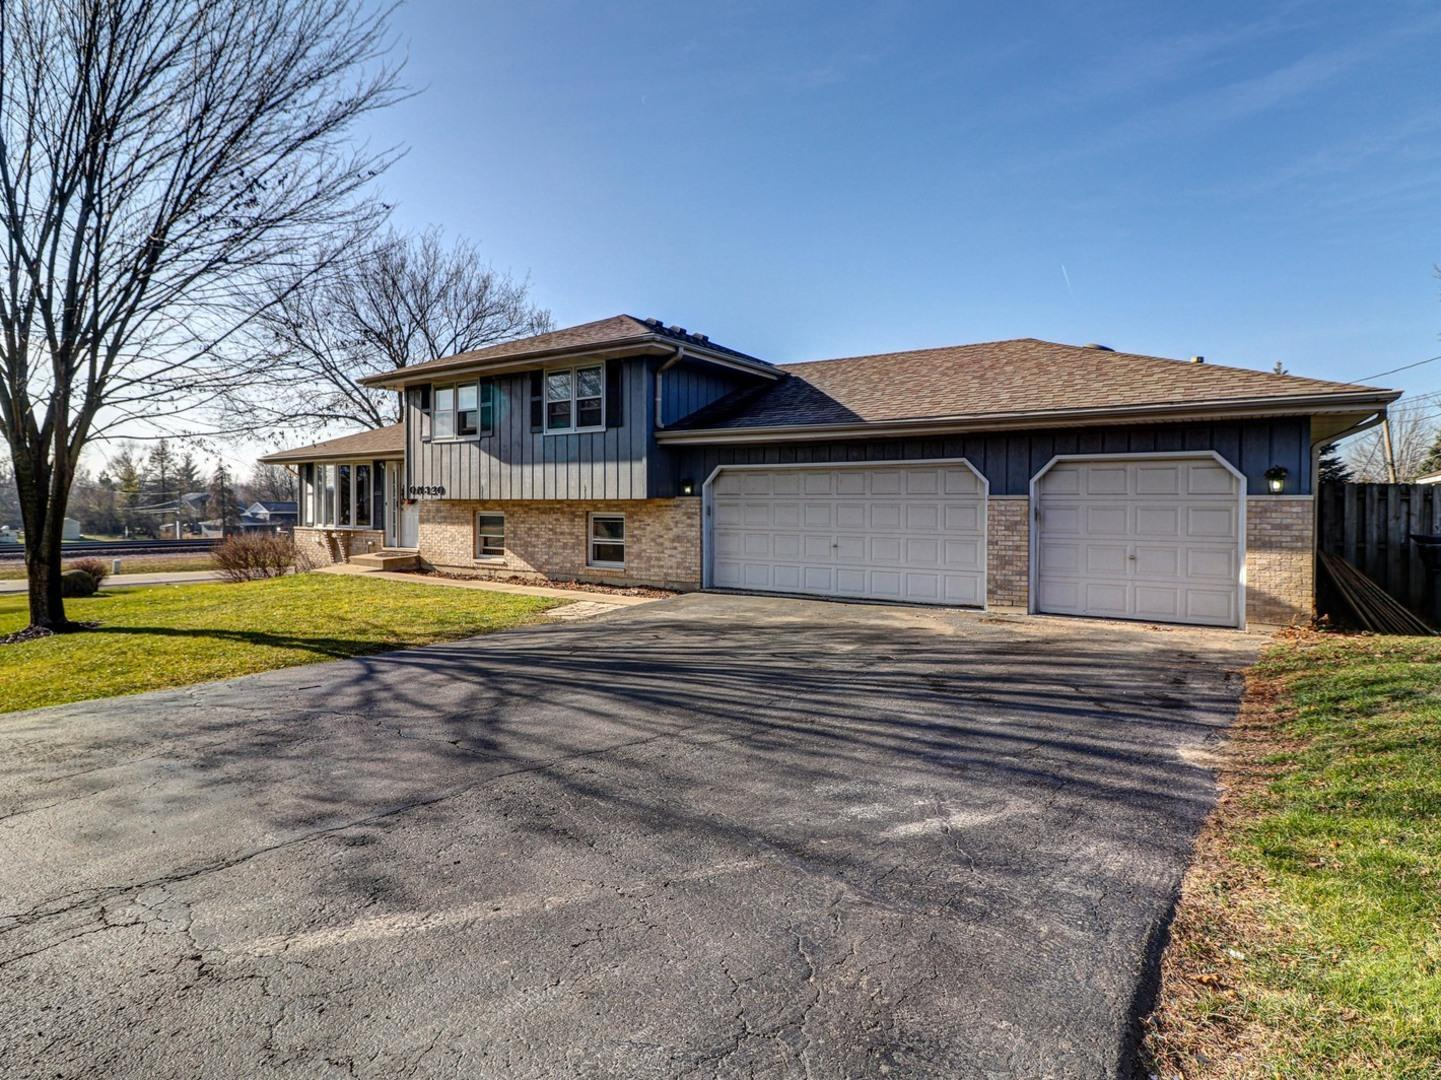 0N320 SUNSET Avenue, West Chicago, IL 60185 - #: 10951812